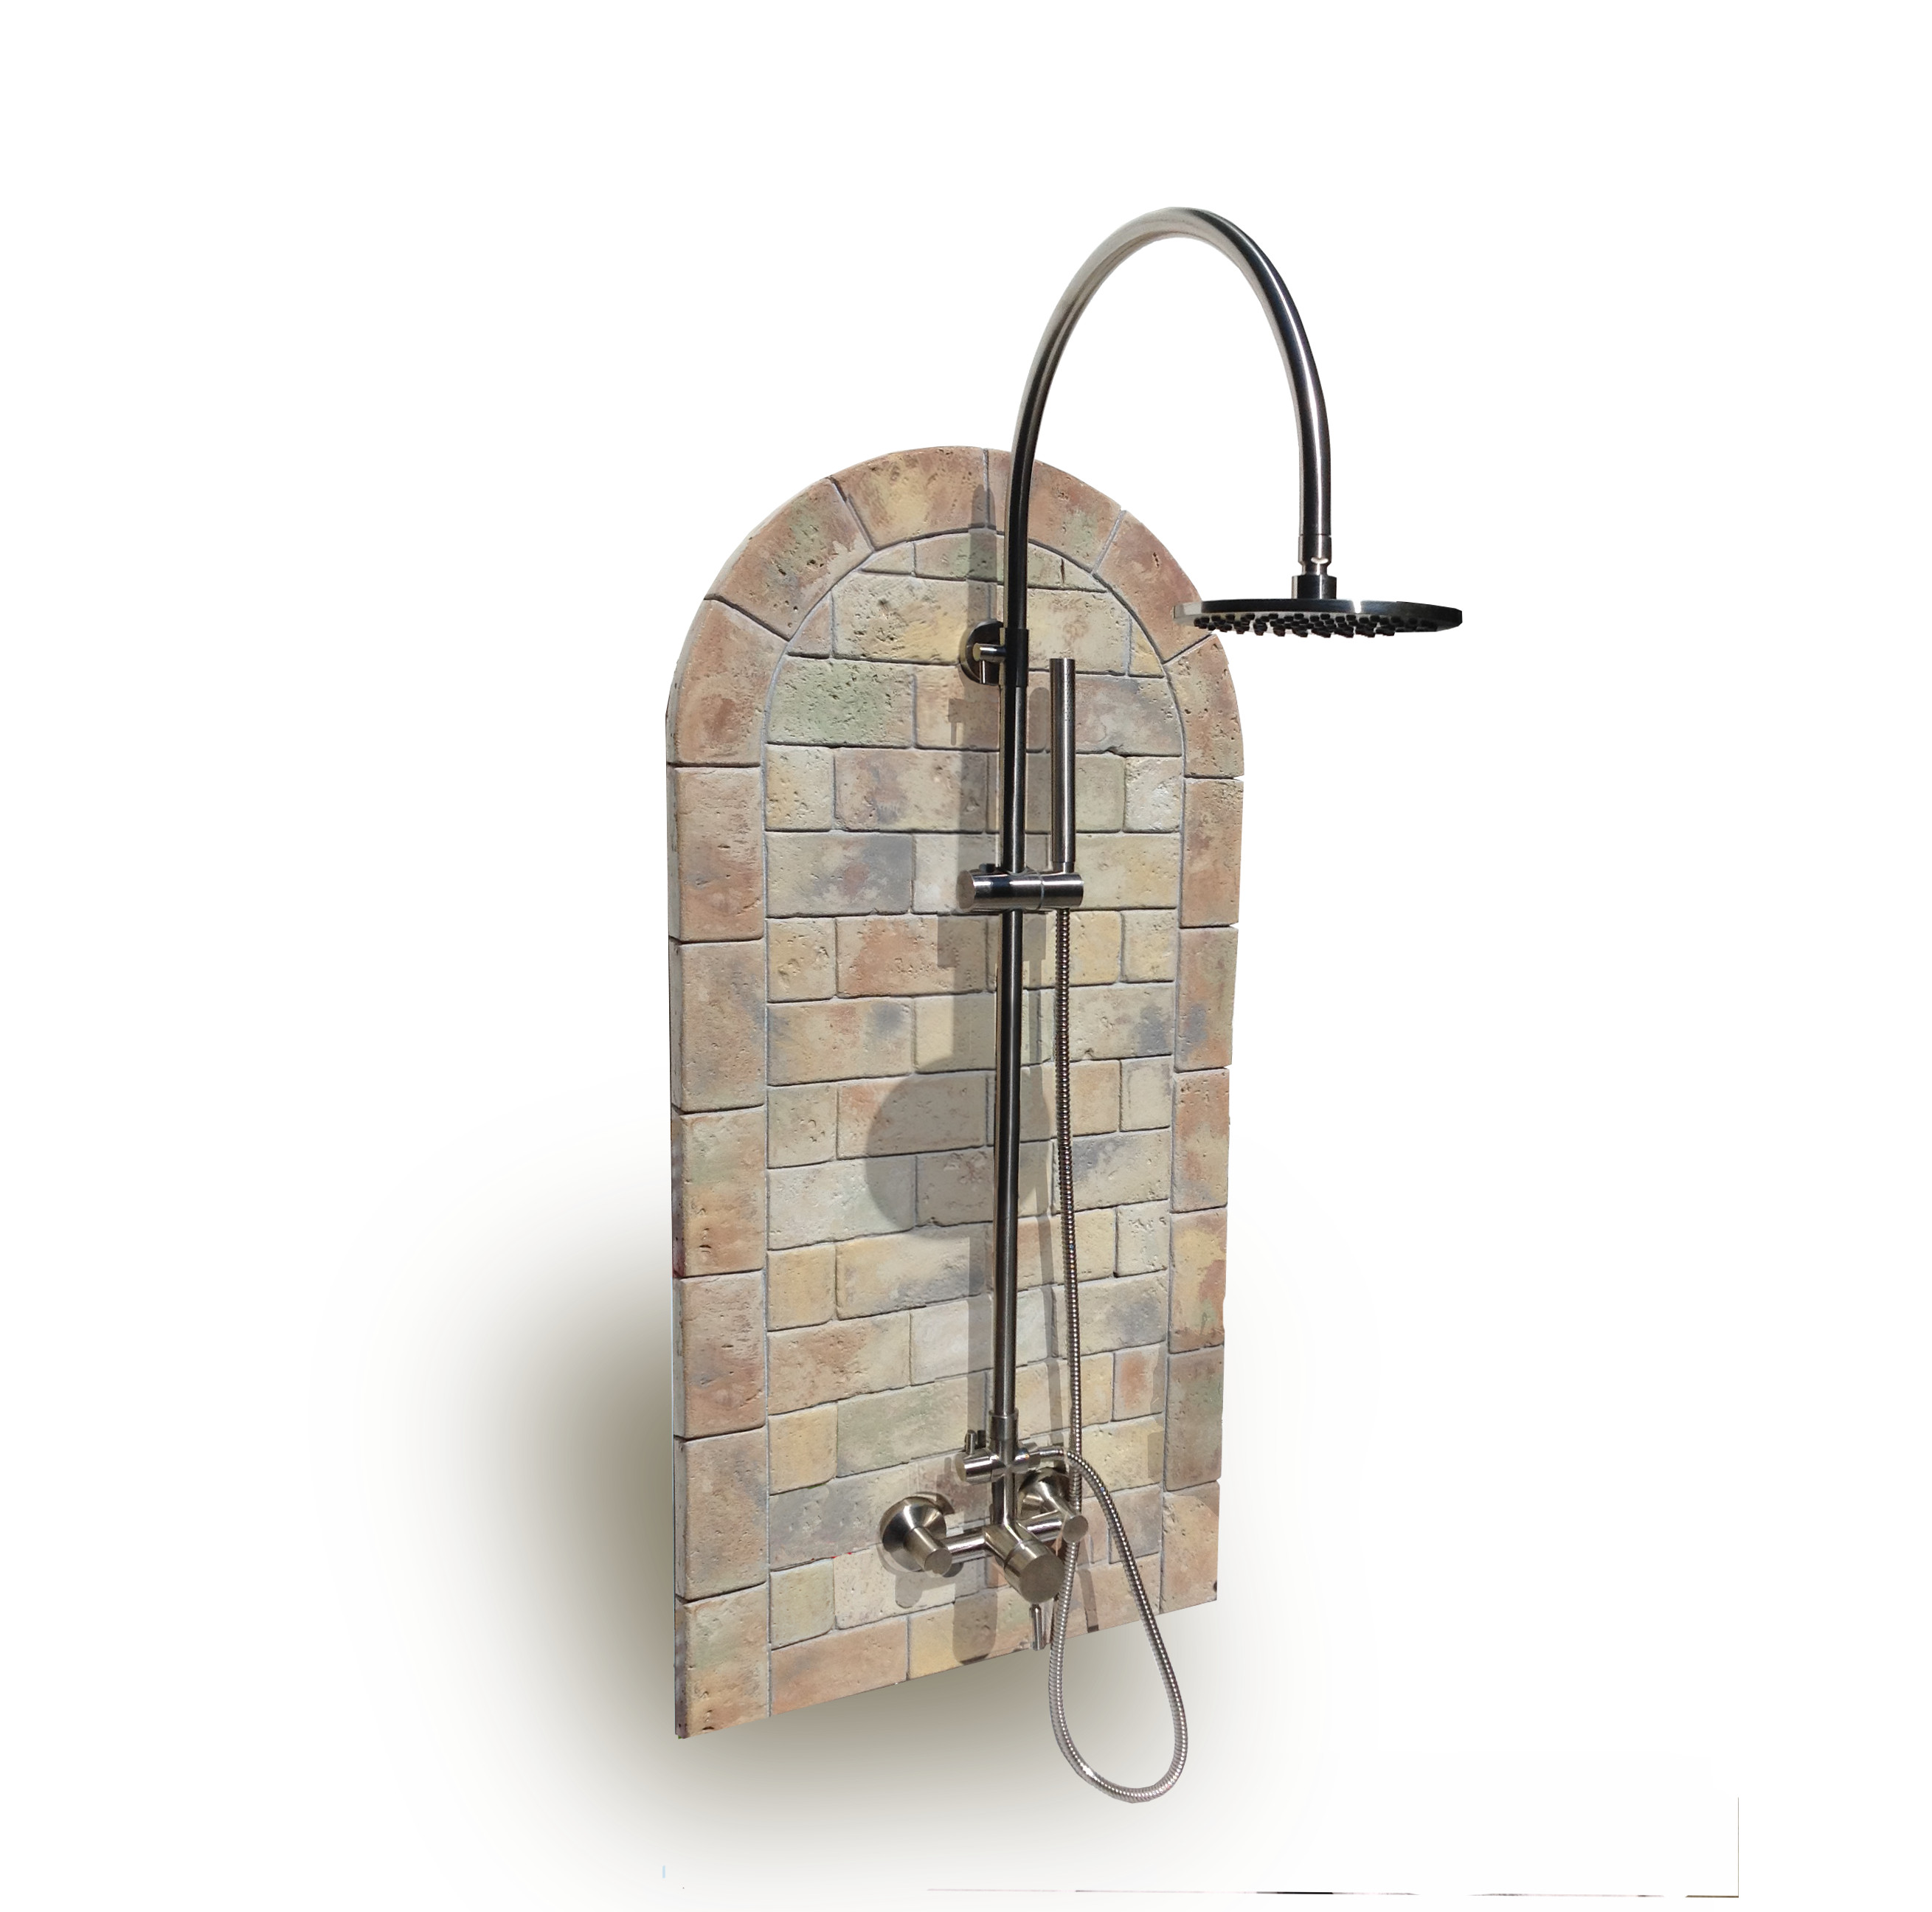 Oceanic Theme Outdoor Shower Kit Sunrinse Outdoor Showers